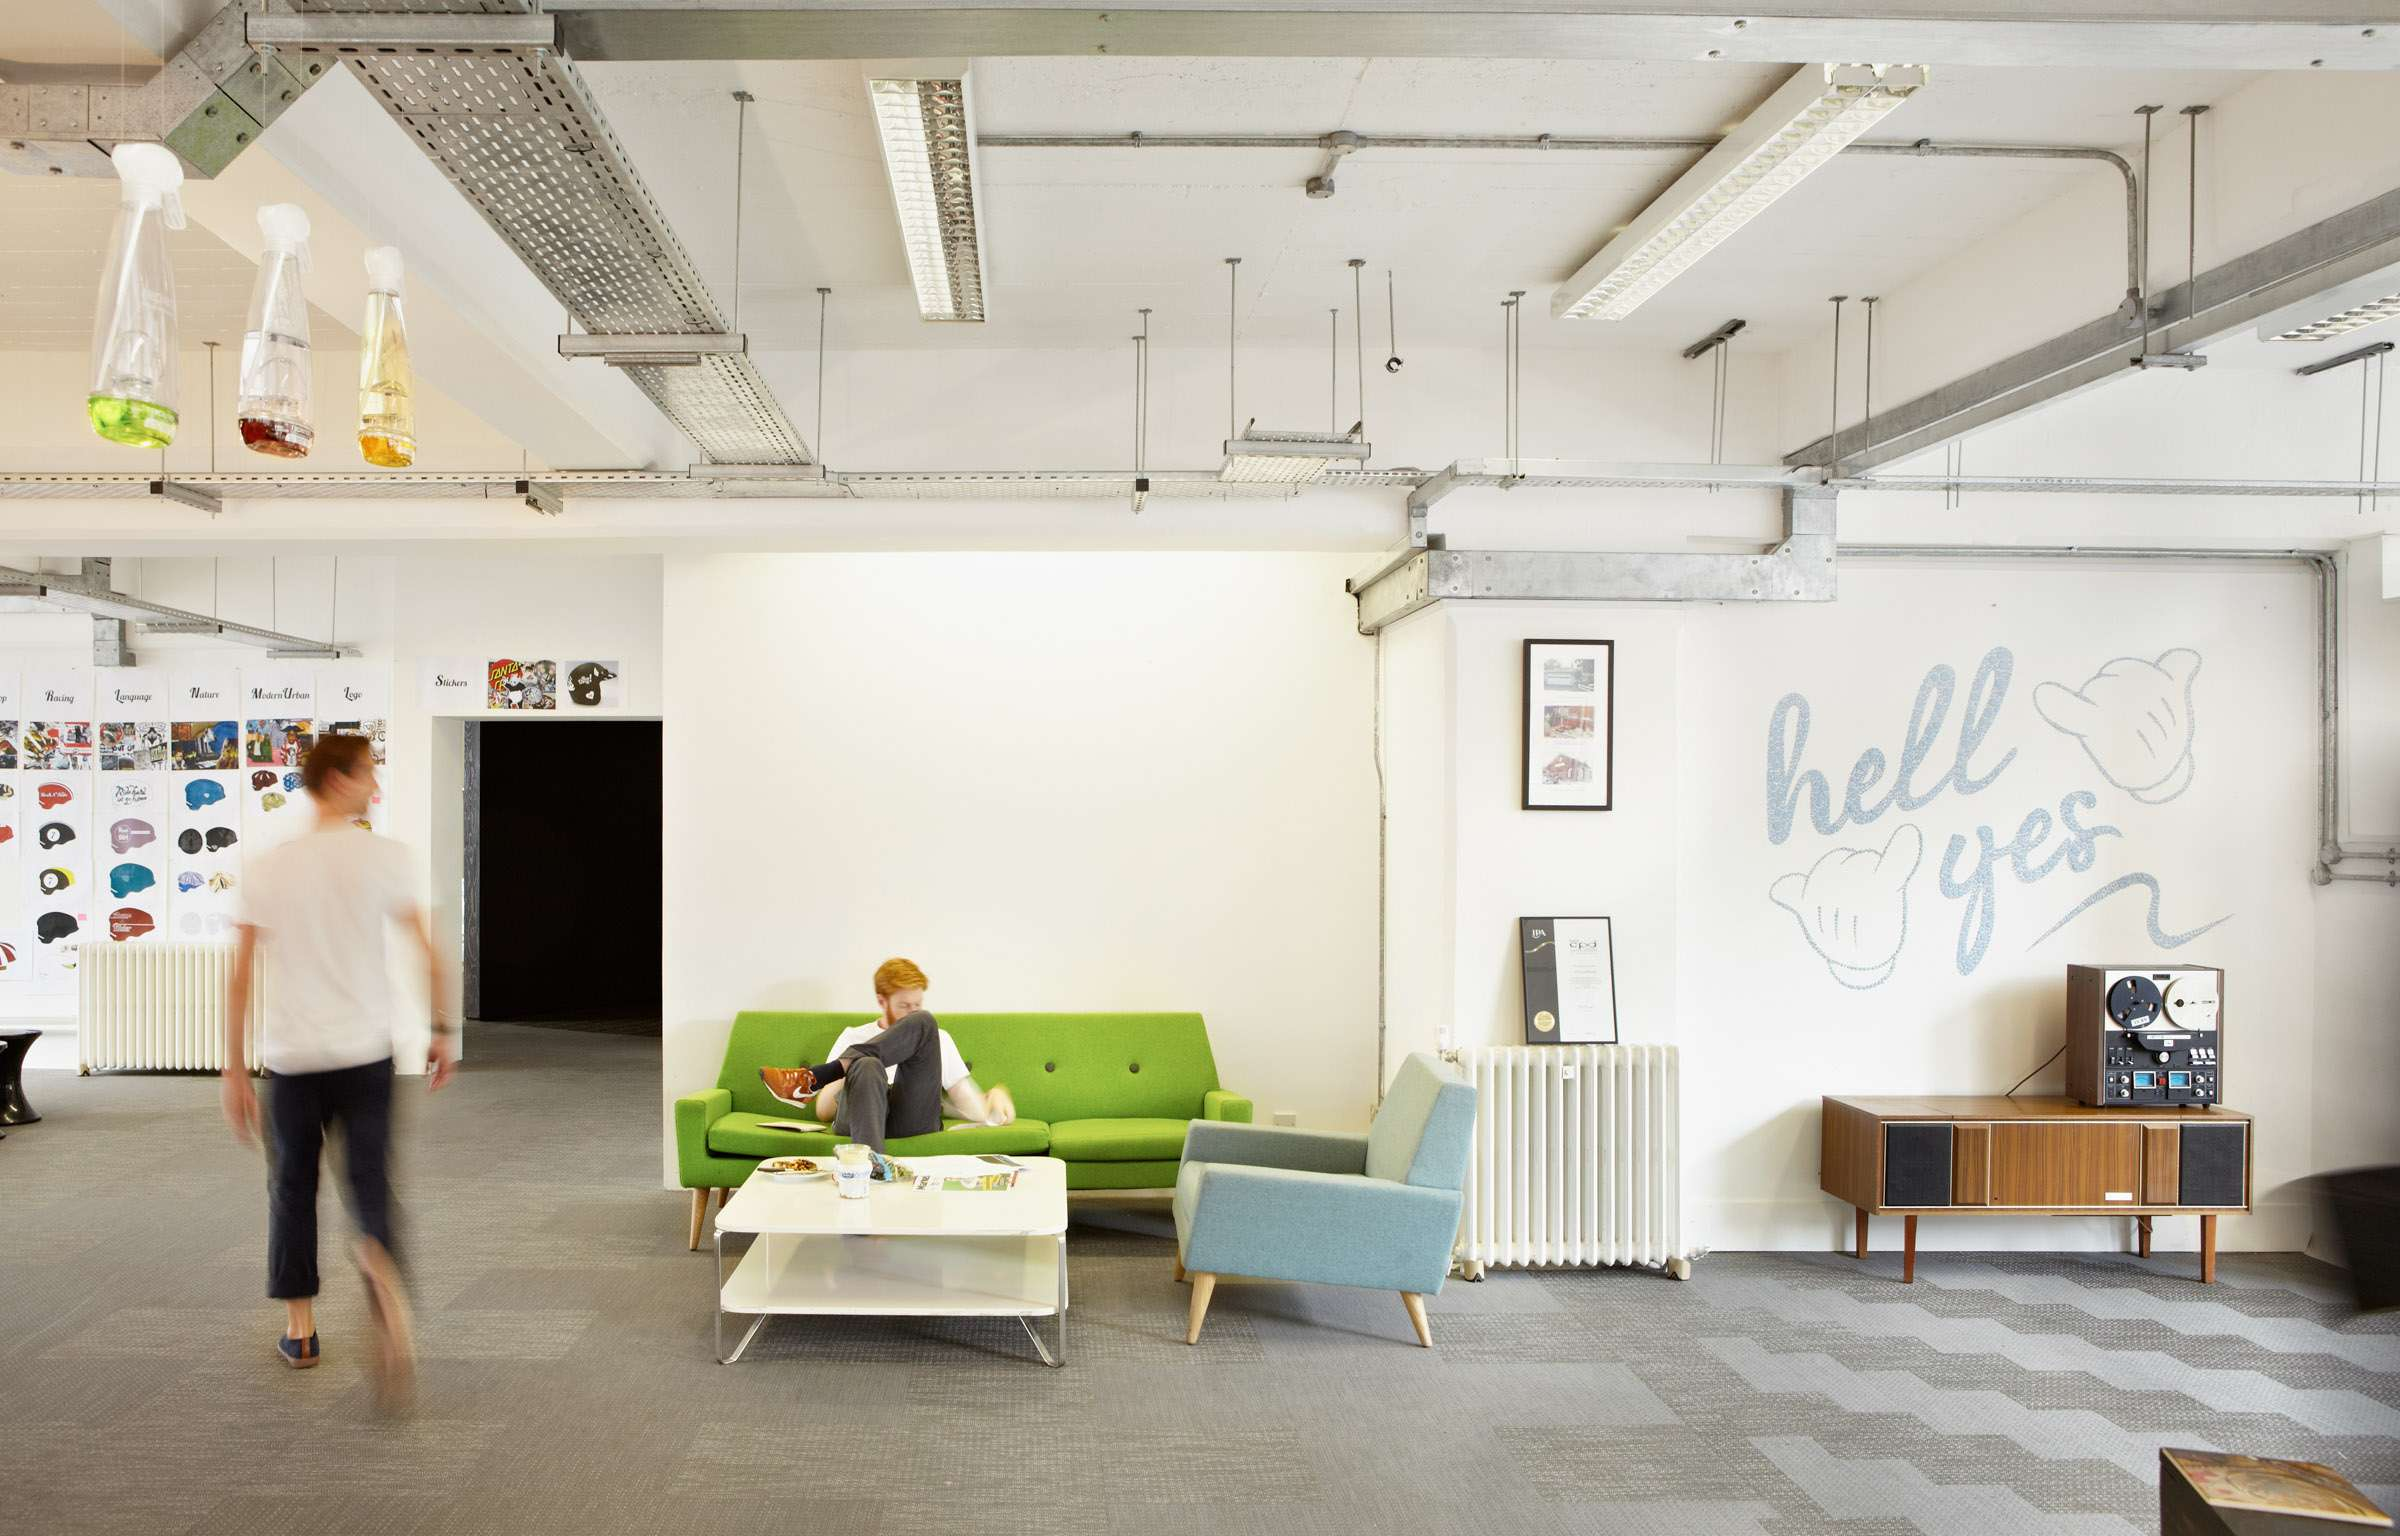 18 Feet & Rising's office in London, United Kingdom